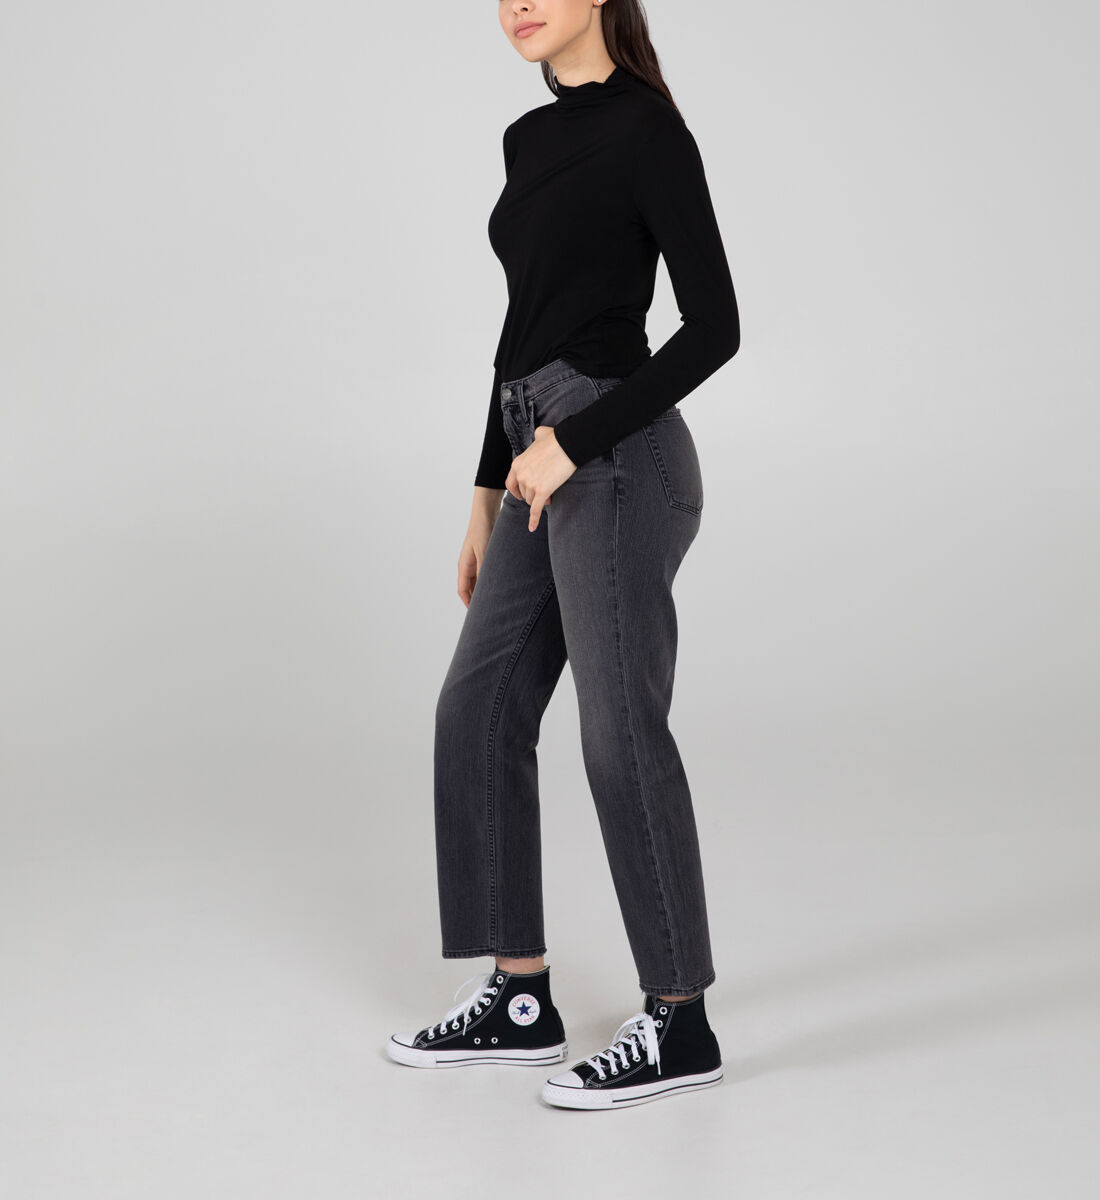 Frisco High Rise Straight Leg Jeans Side